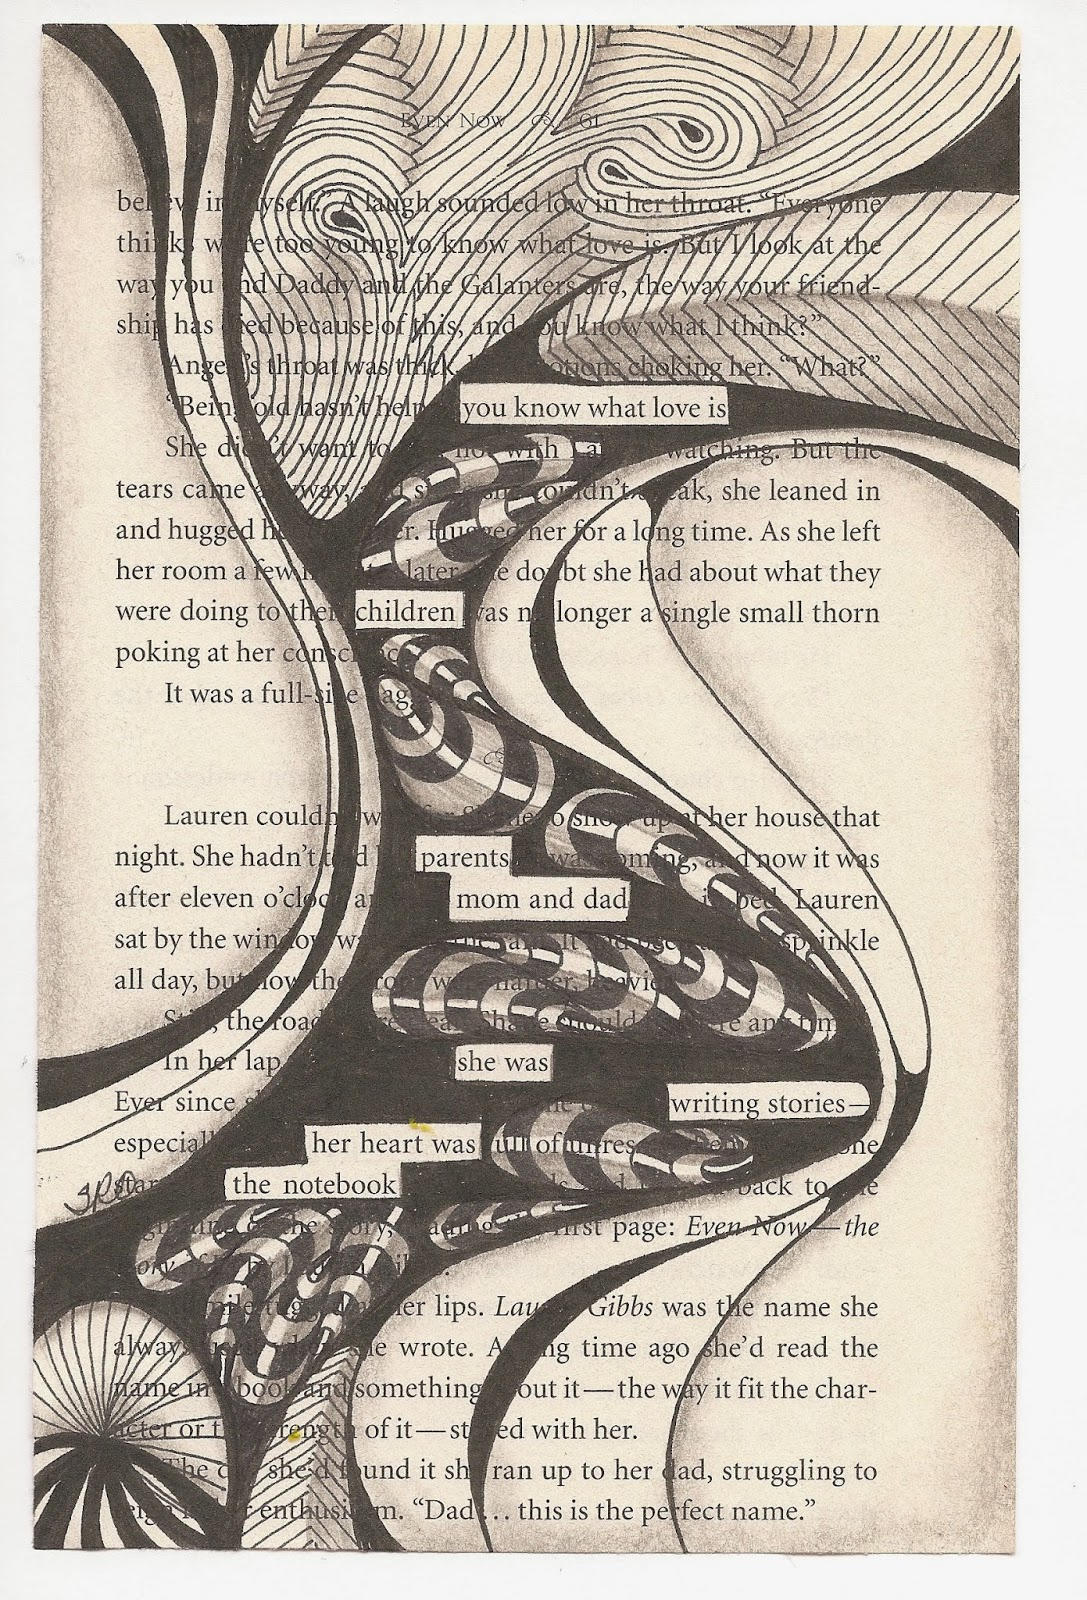 Suzen Art Blackout Poetry Great Fun